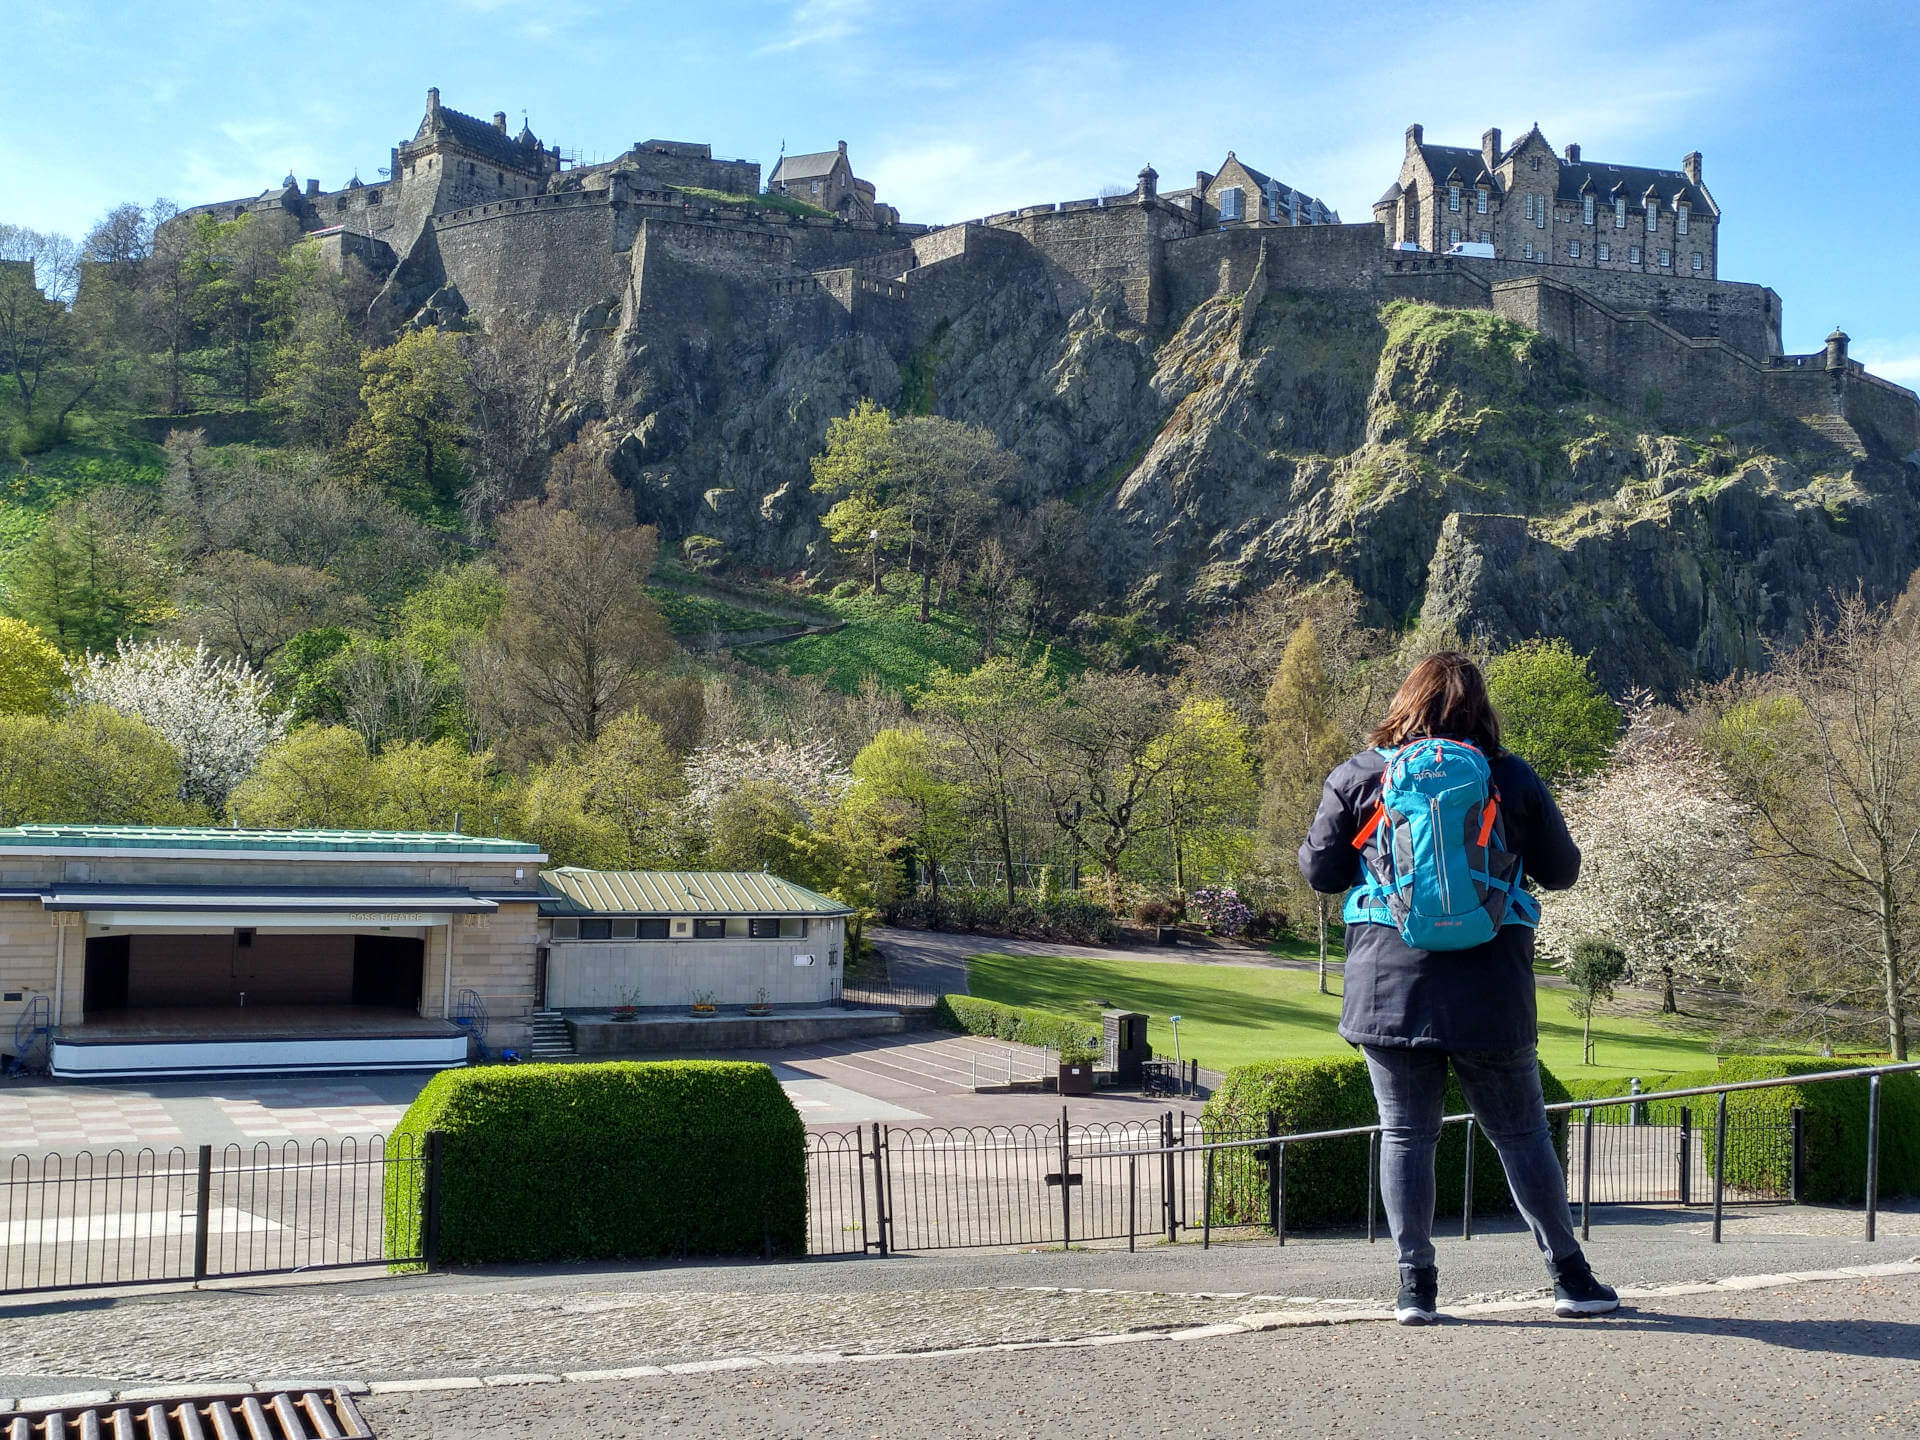 Städtereise Edinburgh - Michaela vor dem Edinburgh Castle in Schottlands Hauptsadt.